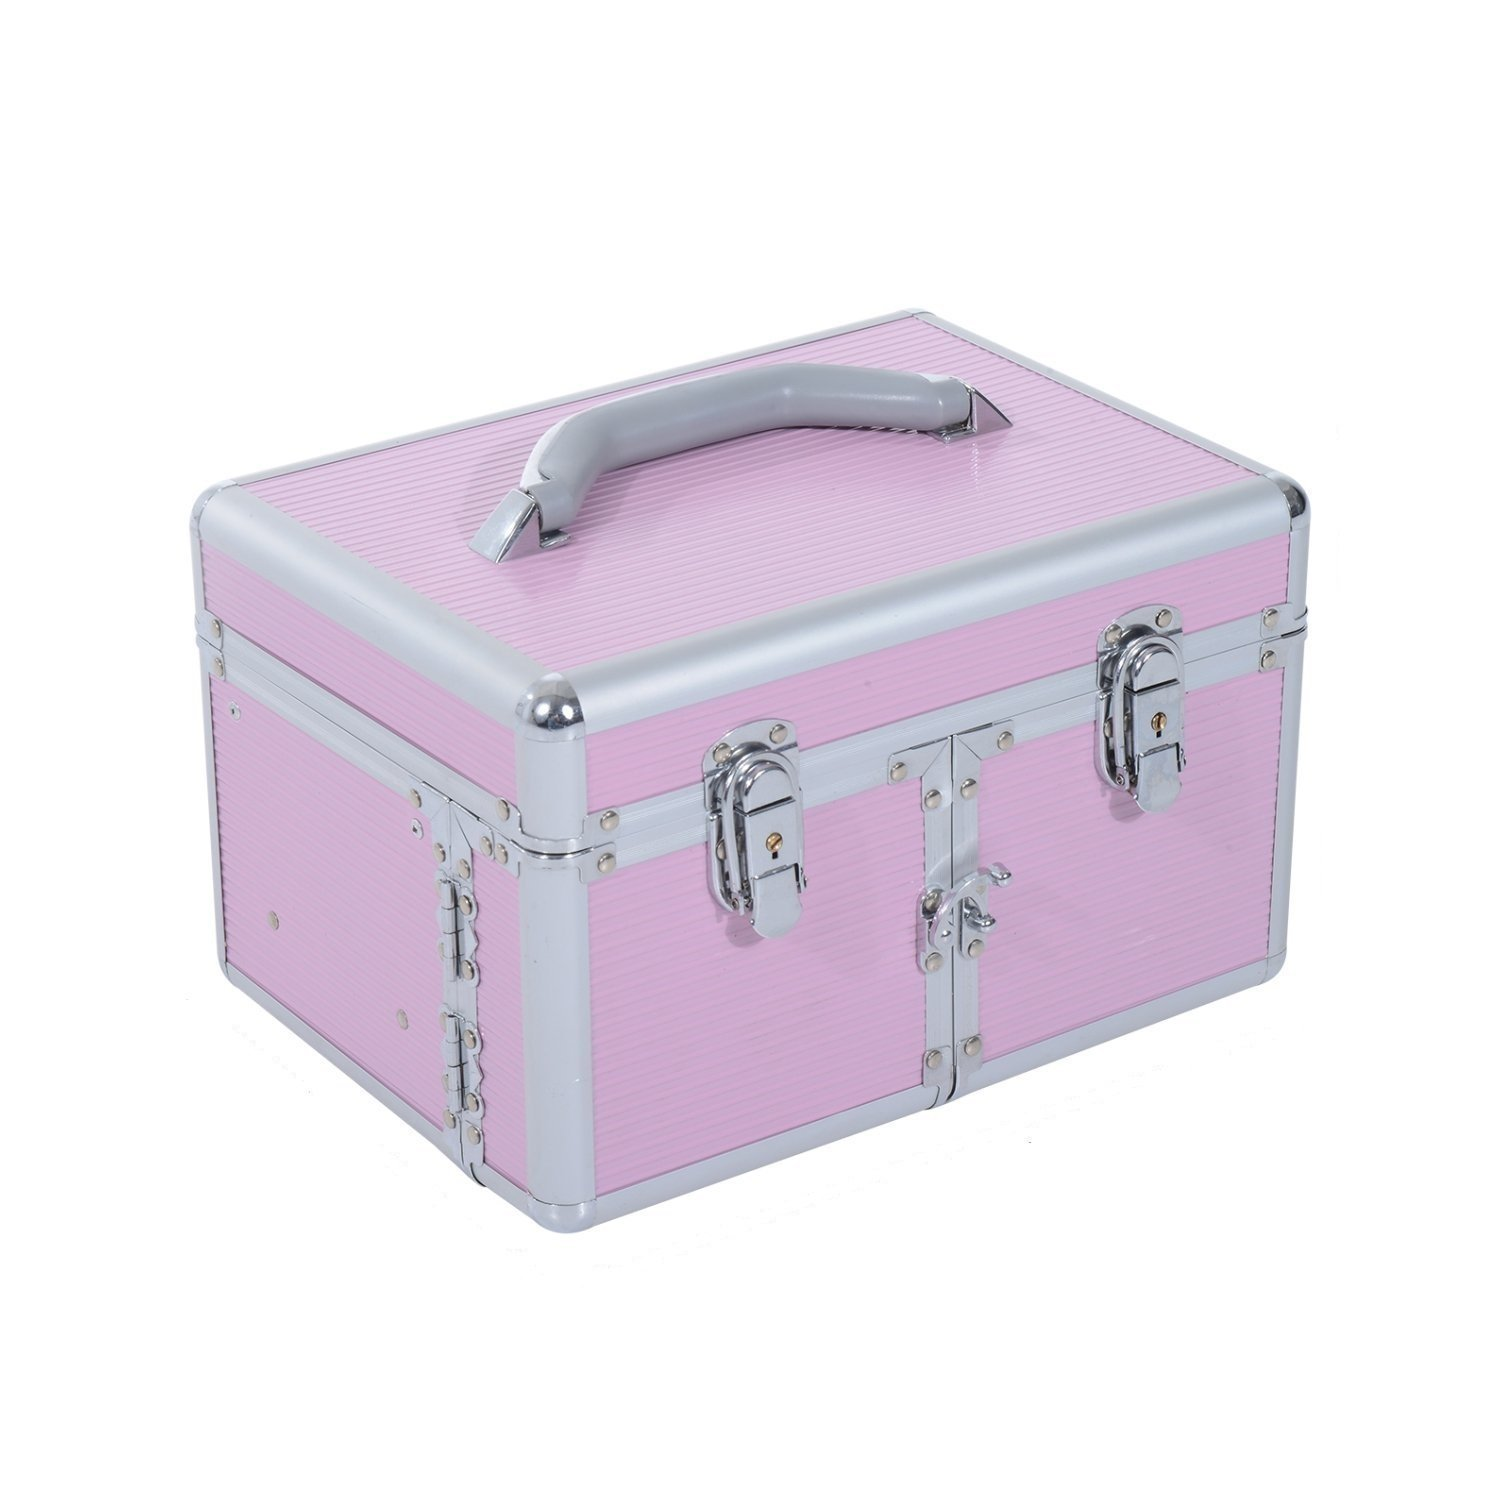 Soozier Pro Makeup Train Case Cosmetic Organizer Box Mirror Lock Pink Aosom Canada